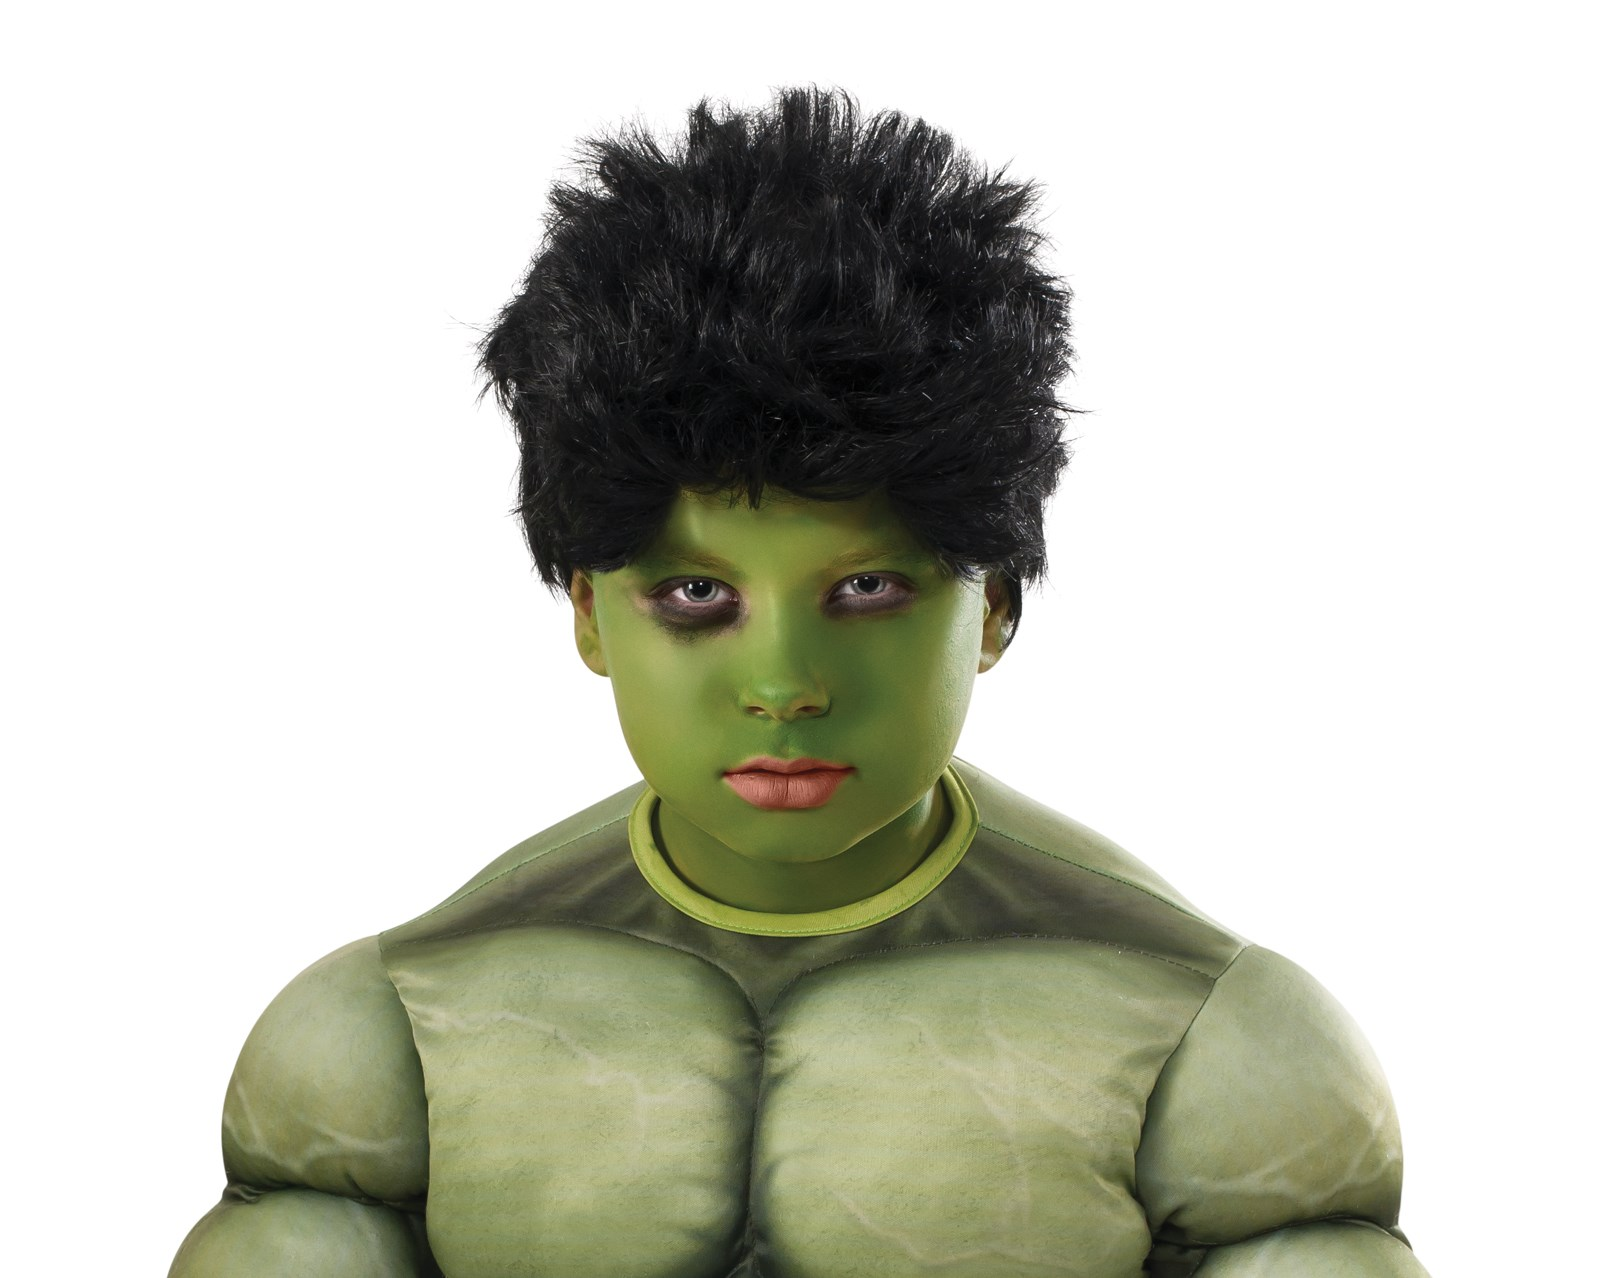 Avengers 2 - Age of Ultron: Kids Hulk Wig